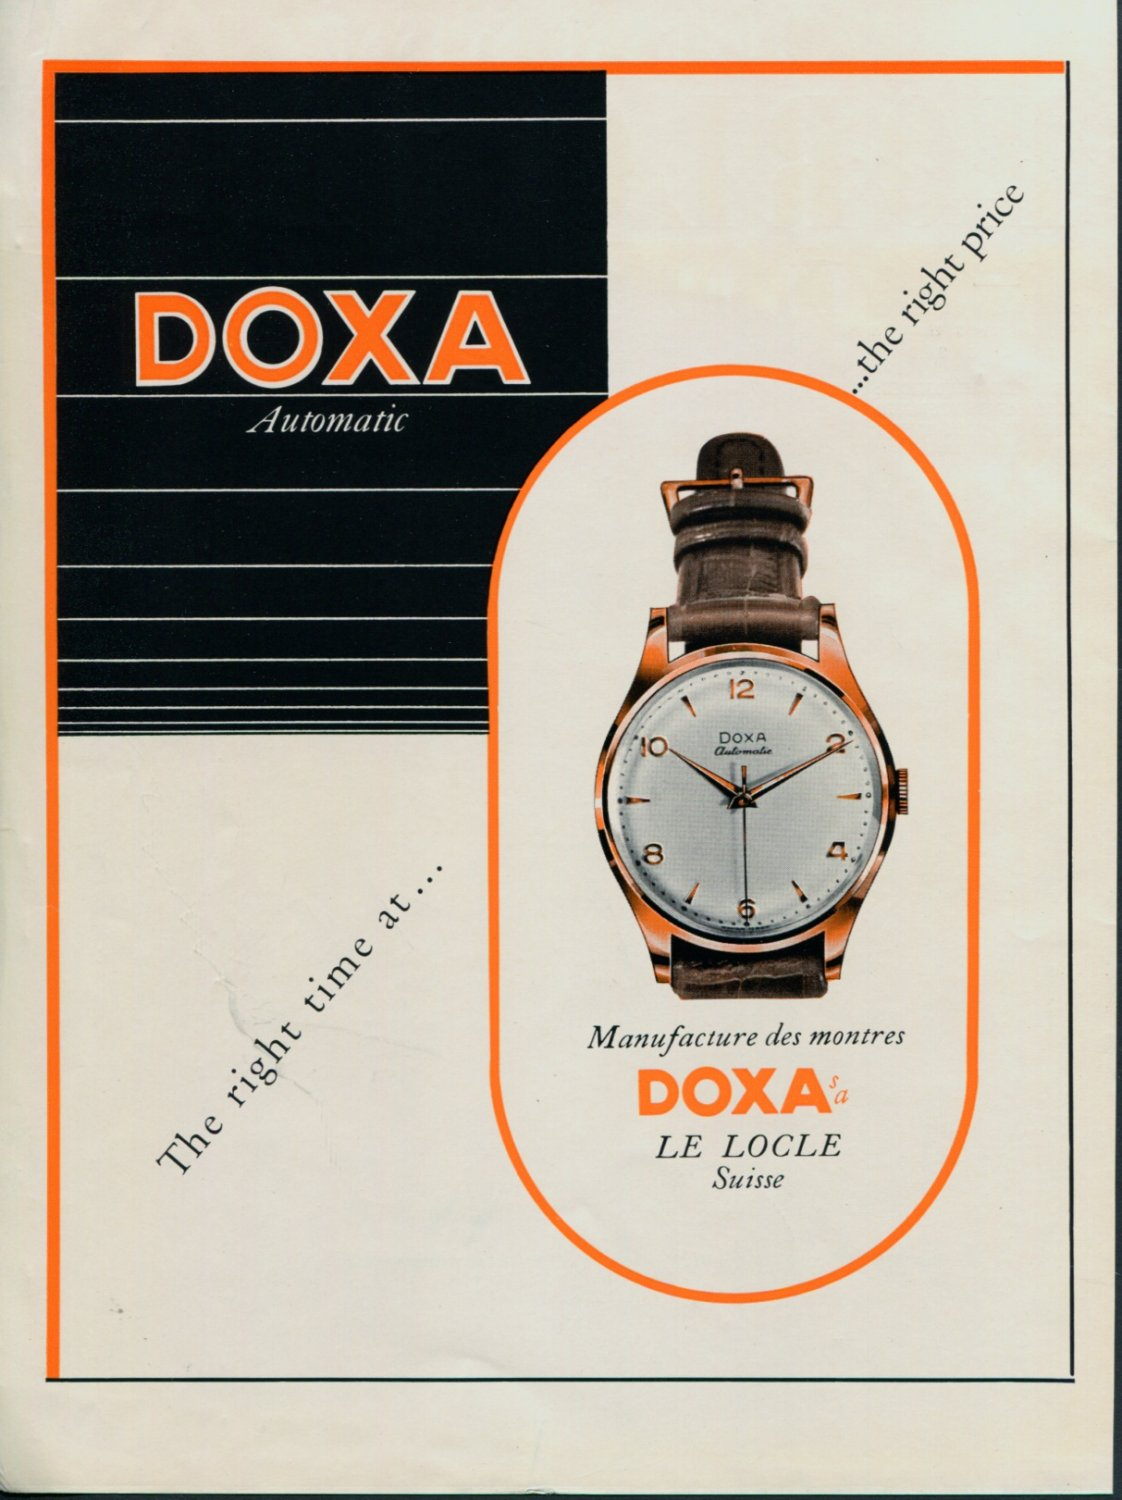 Vintage 1952 Doxa Watch Co Montres Doxa SA Le Locle Switzerland Swiss Advert Publicite Suisse CH